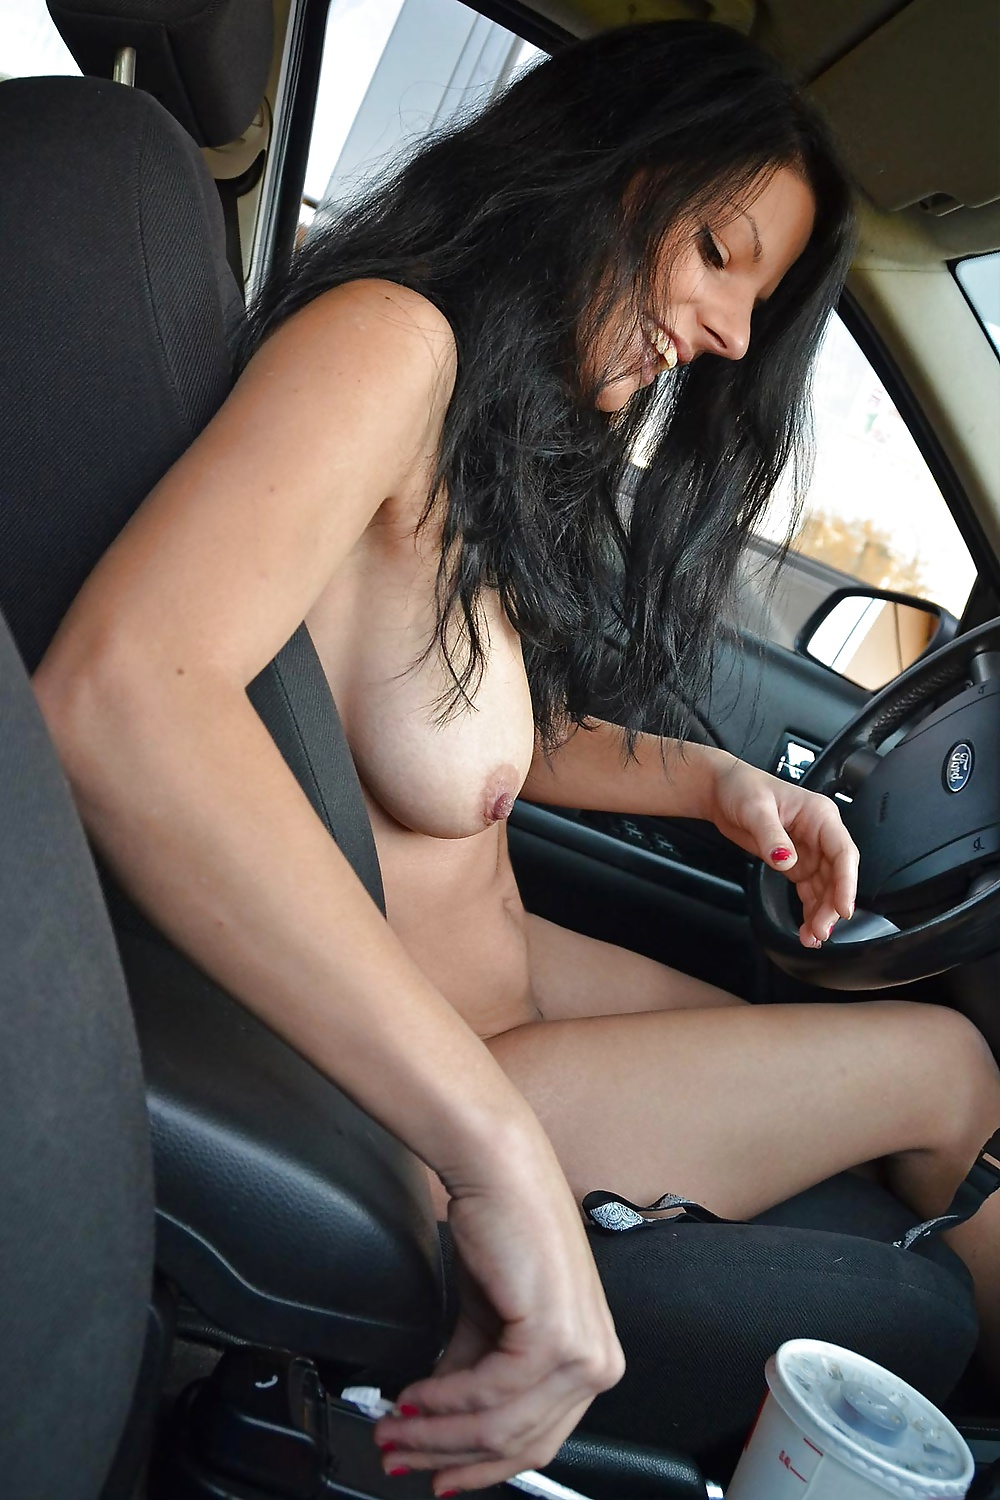 Nude in drive thru, hot guy giving blowjobs gif